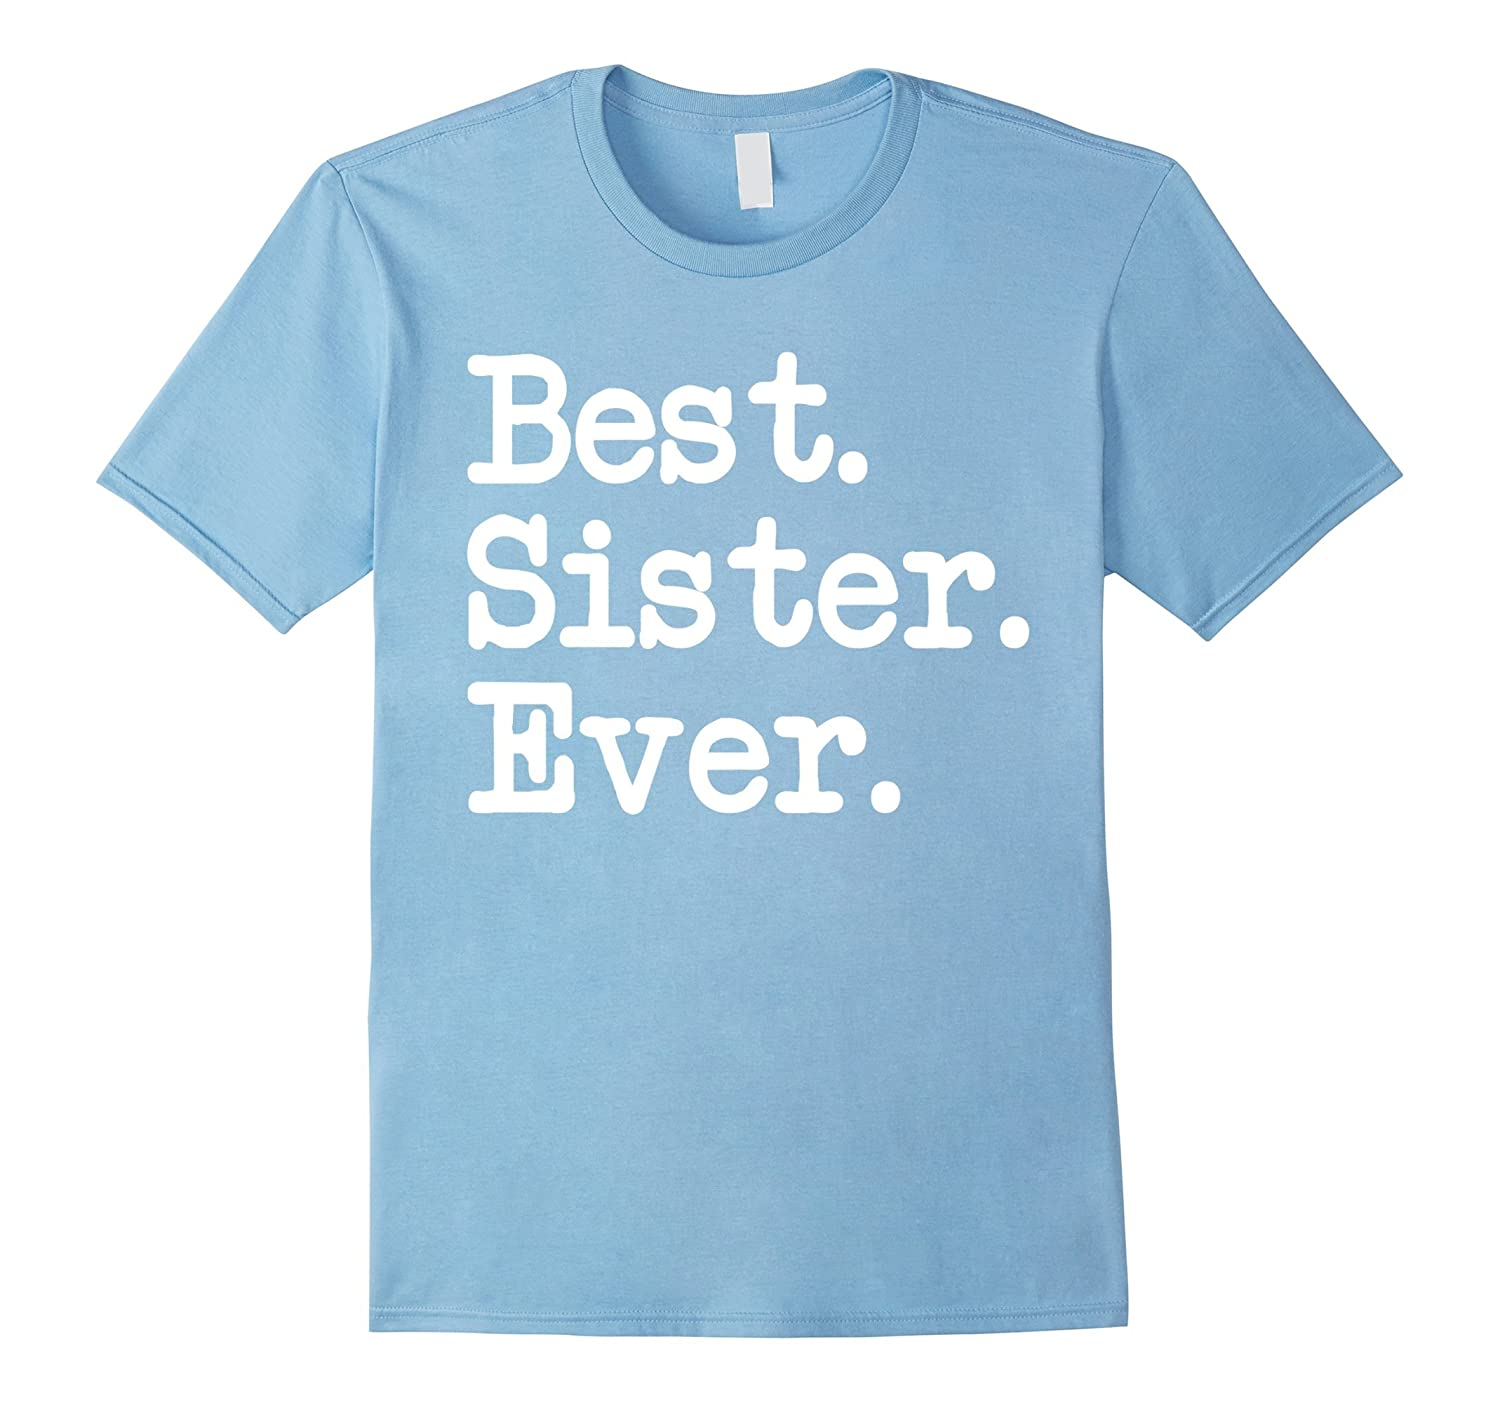 Amazon.com: Best. Sister. Ever. T-shirt Great Gift For Special ...